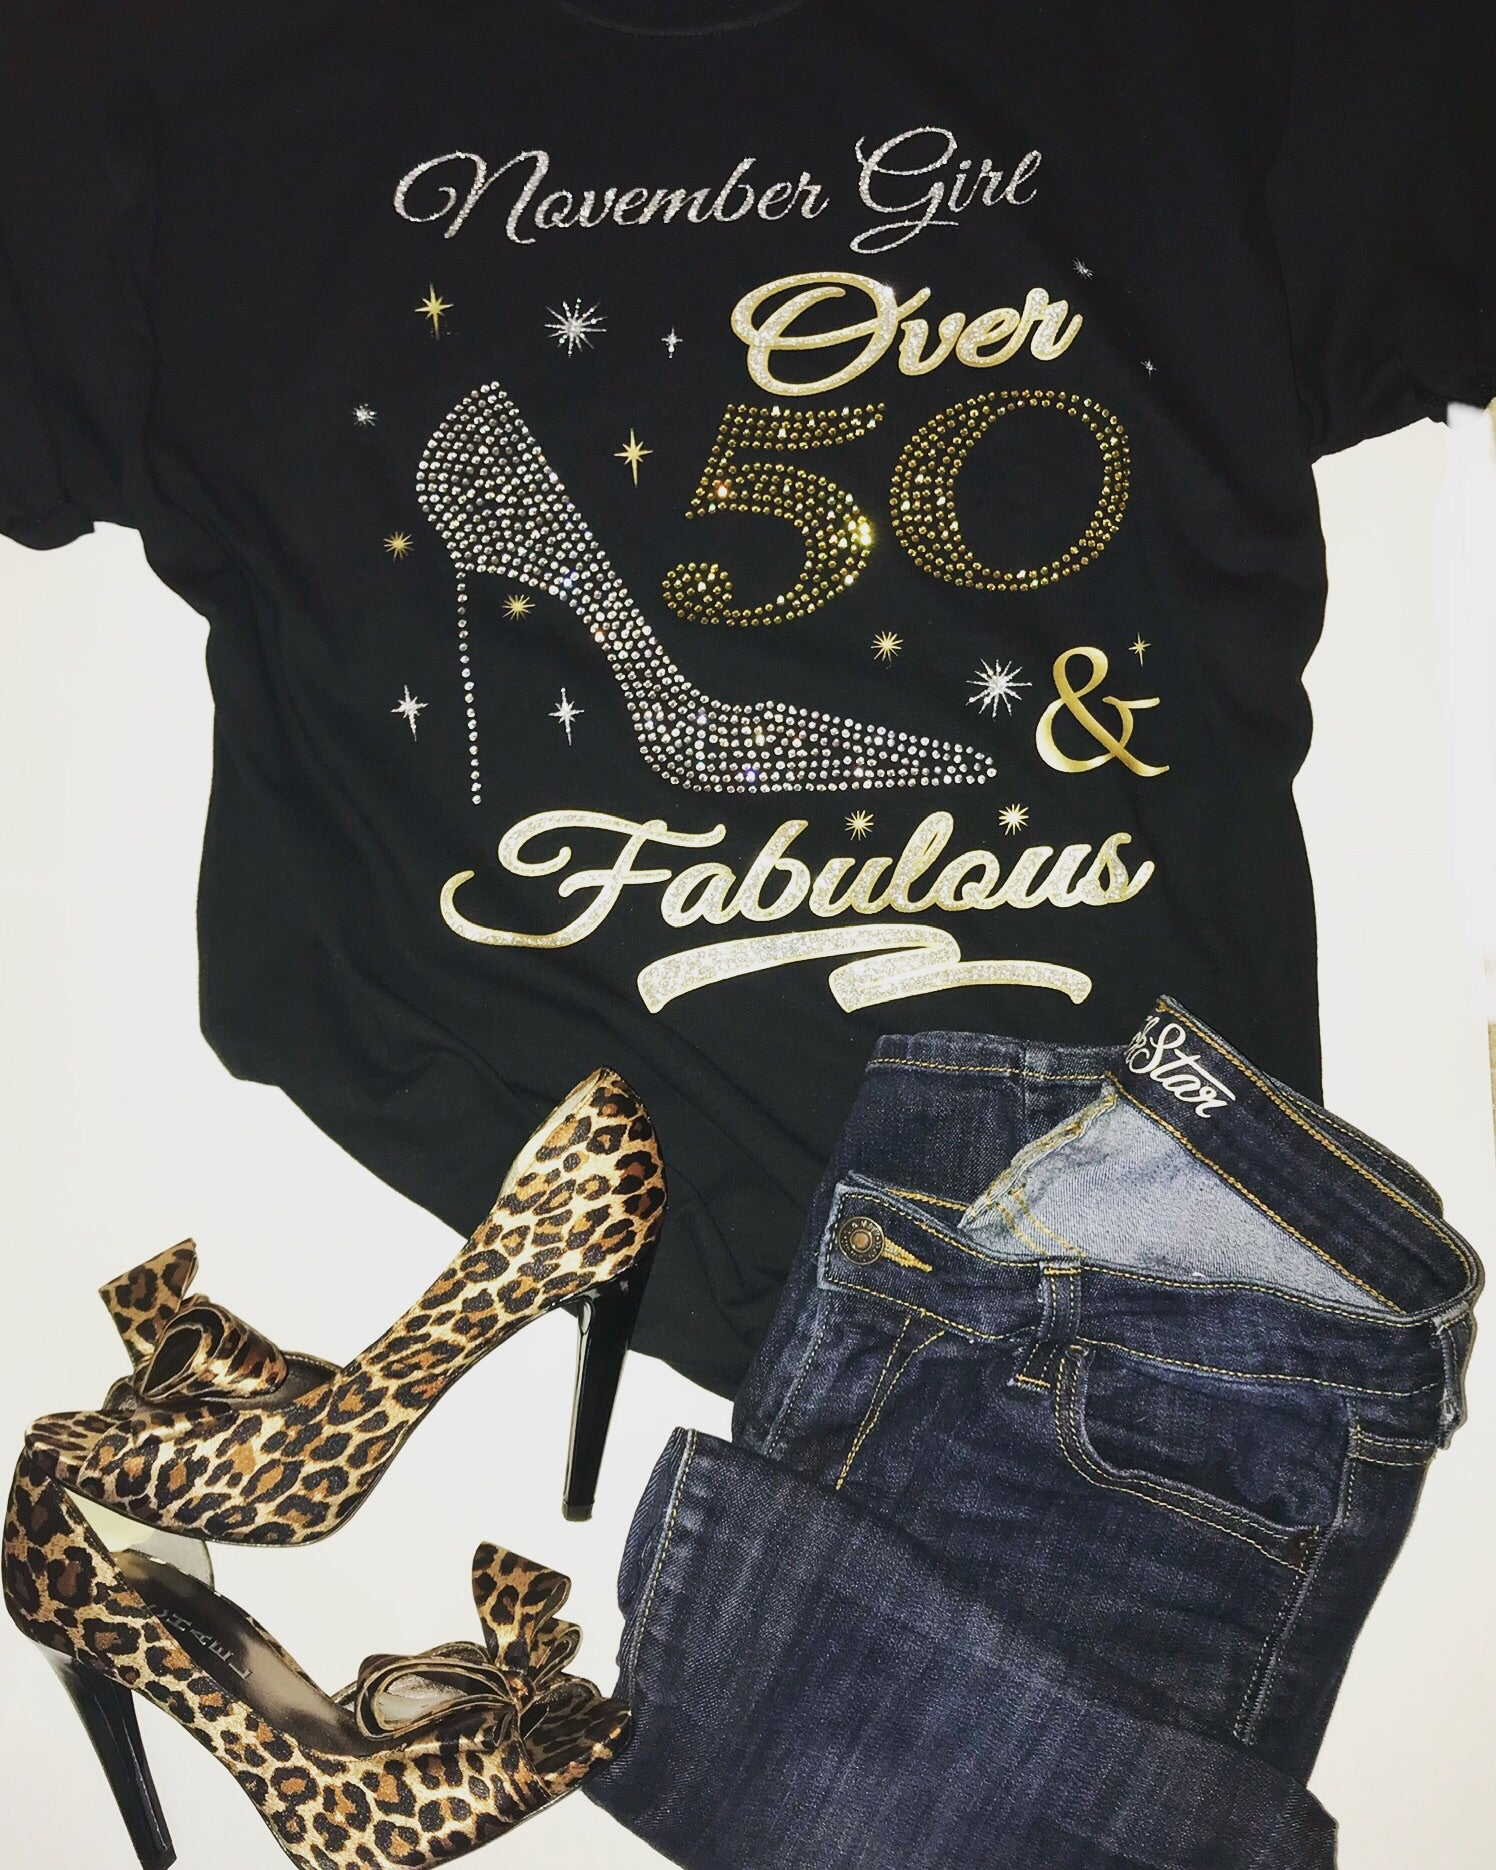 Over 50 and Fabulous Birthday Shirt - In The Limelight